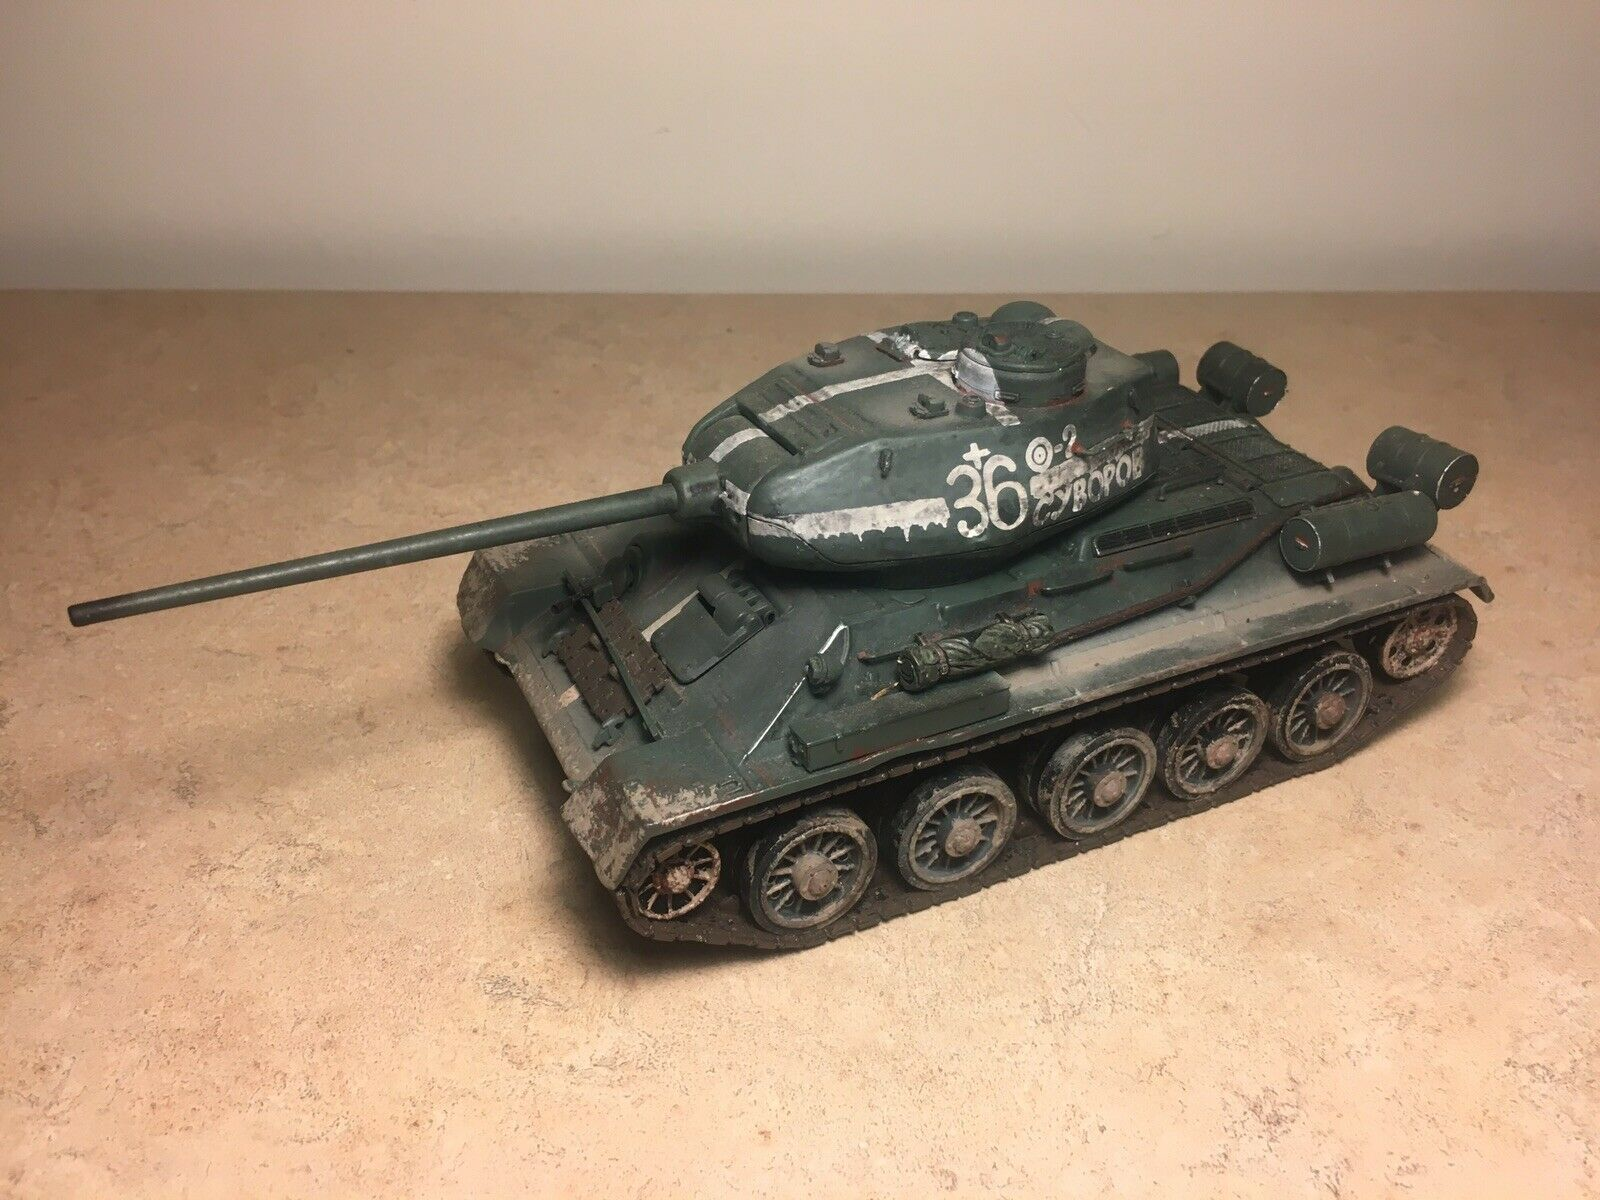 Forces Of Valor Unimax 1 32 Soviet Russian T-34 85 Tank Eastern Front, 1945